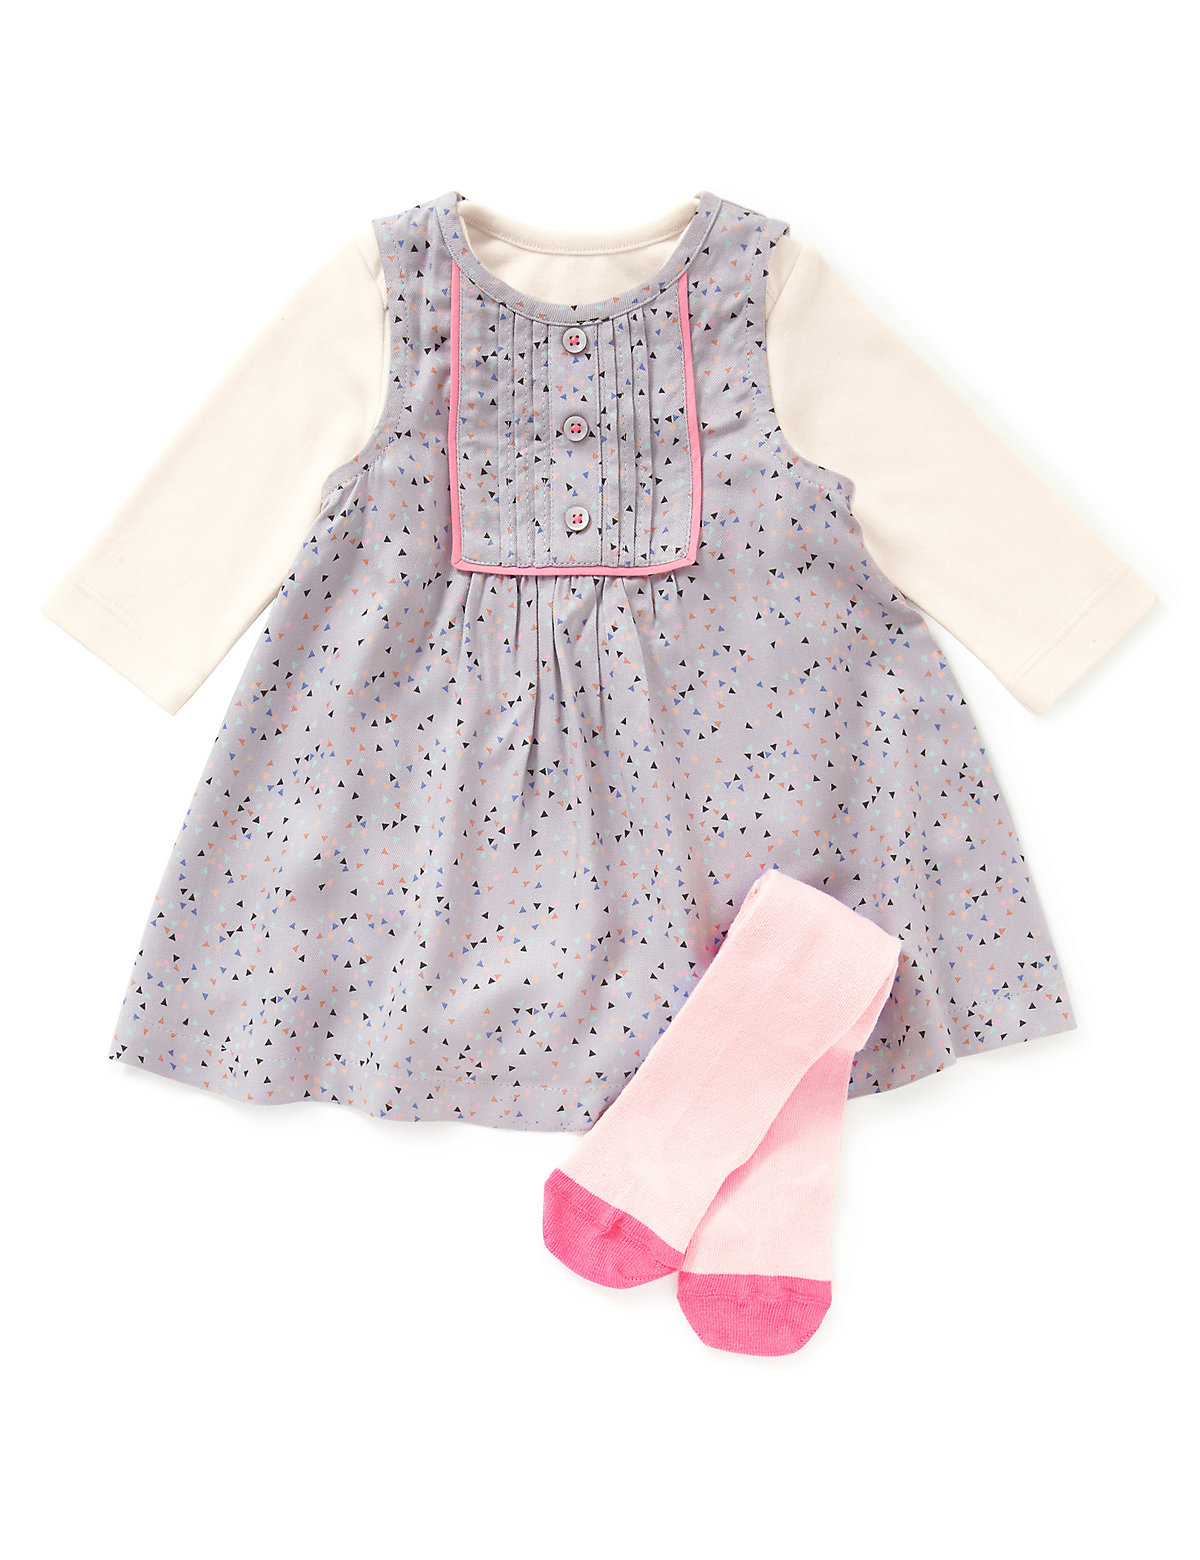 3 Piece Cotton Rich Corduroy Pinafore Dress, Bodysuit & Tights Outfit